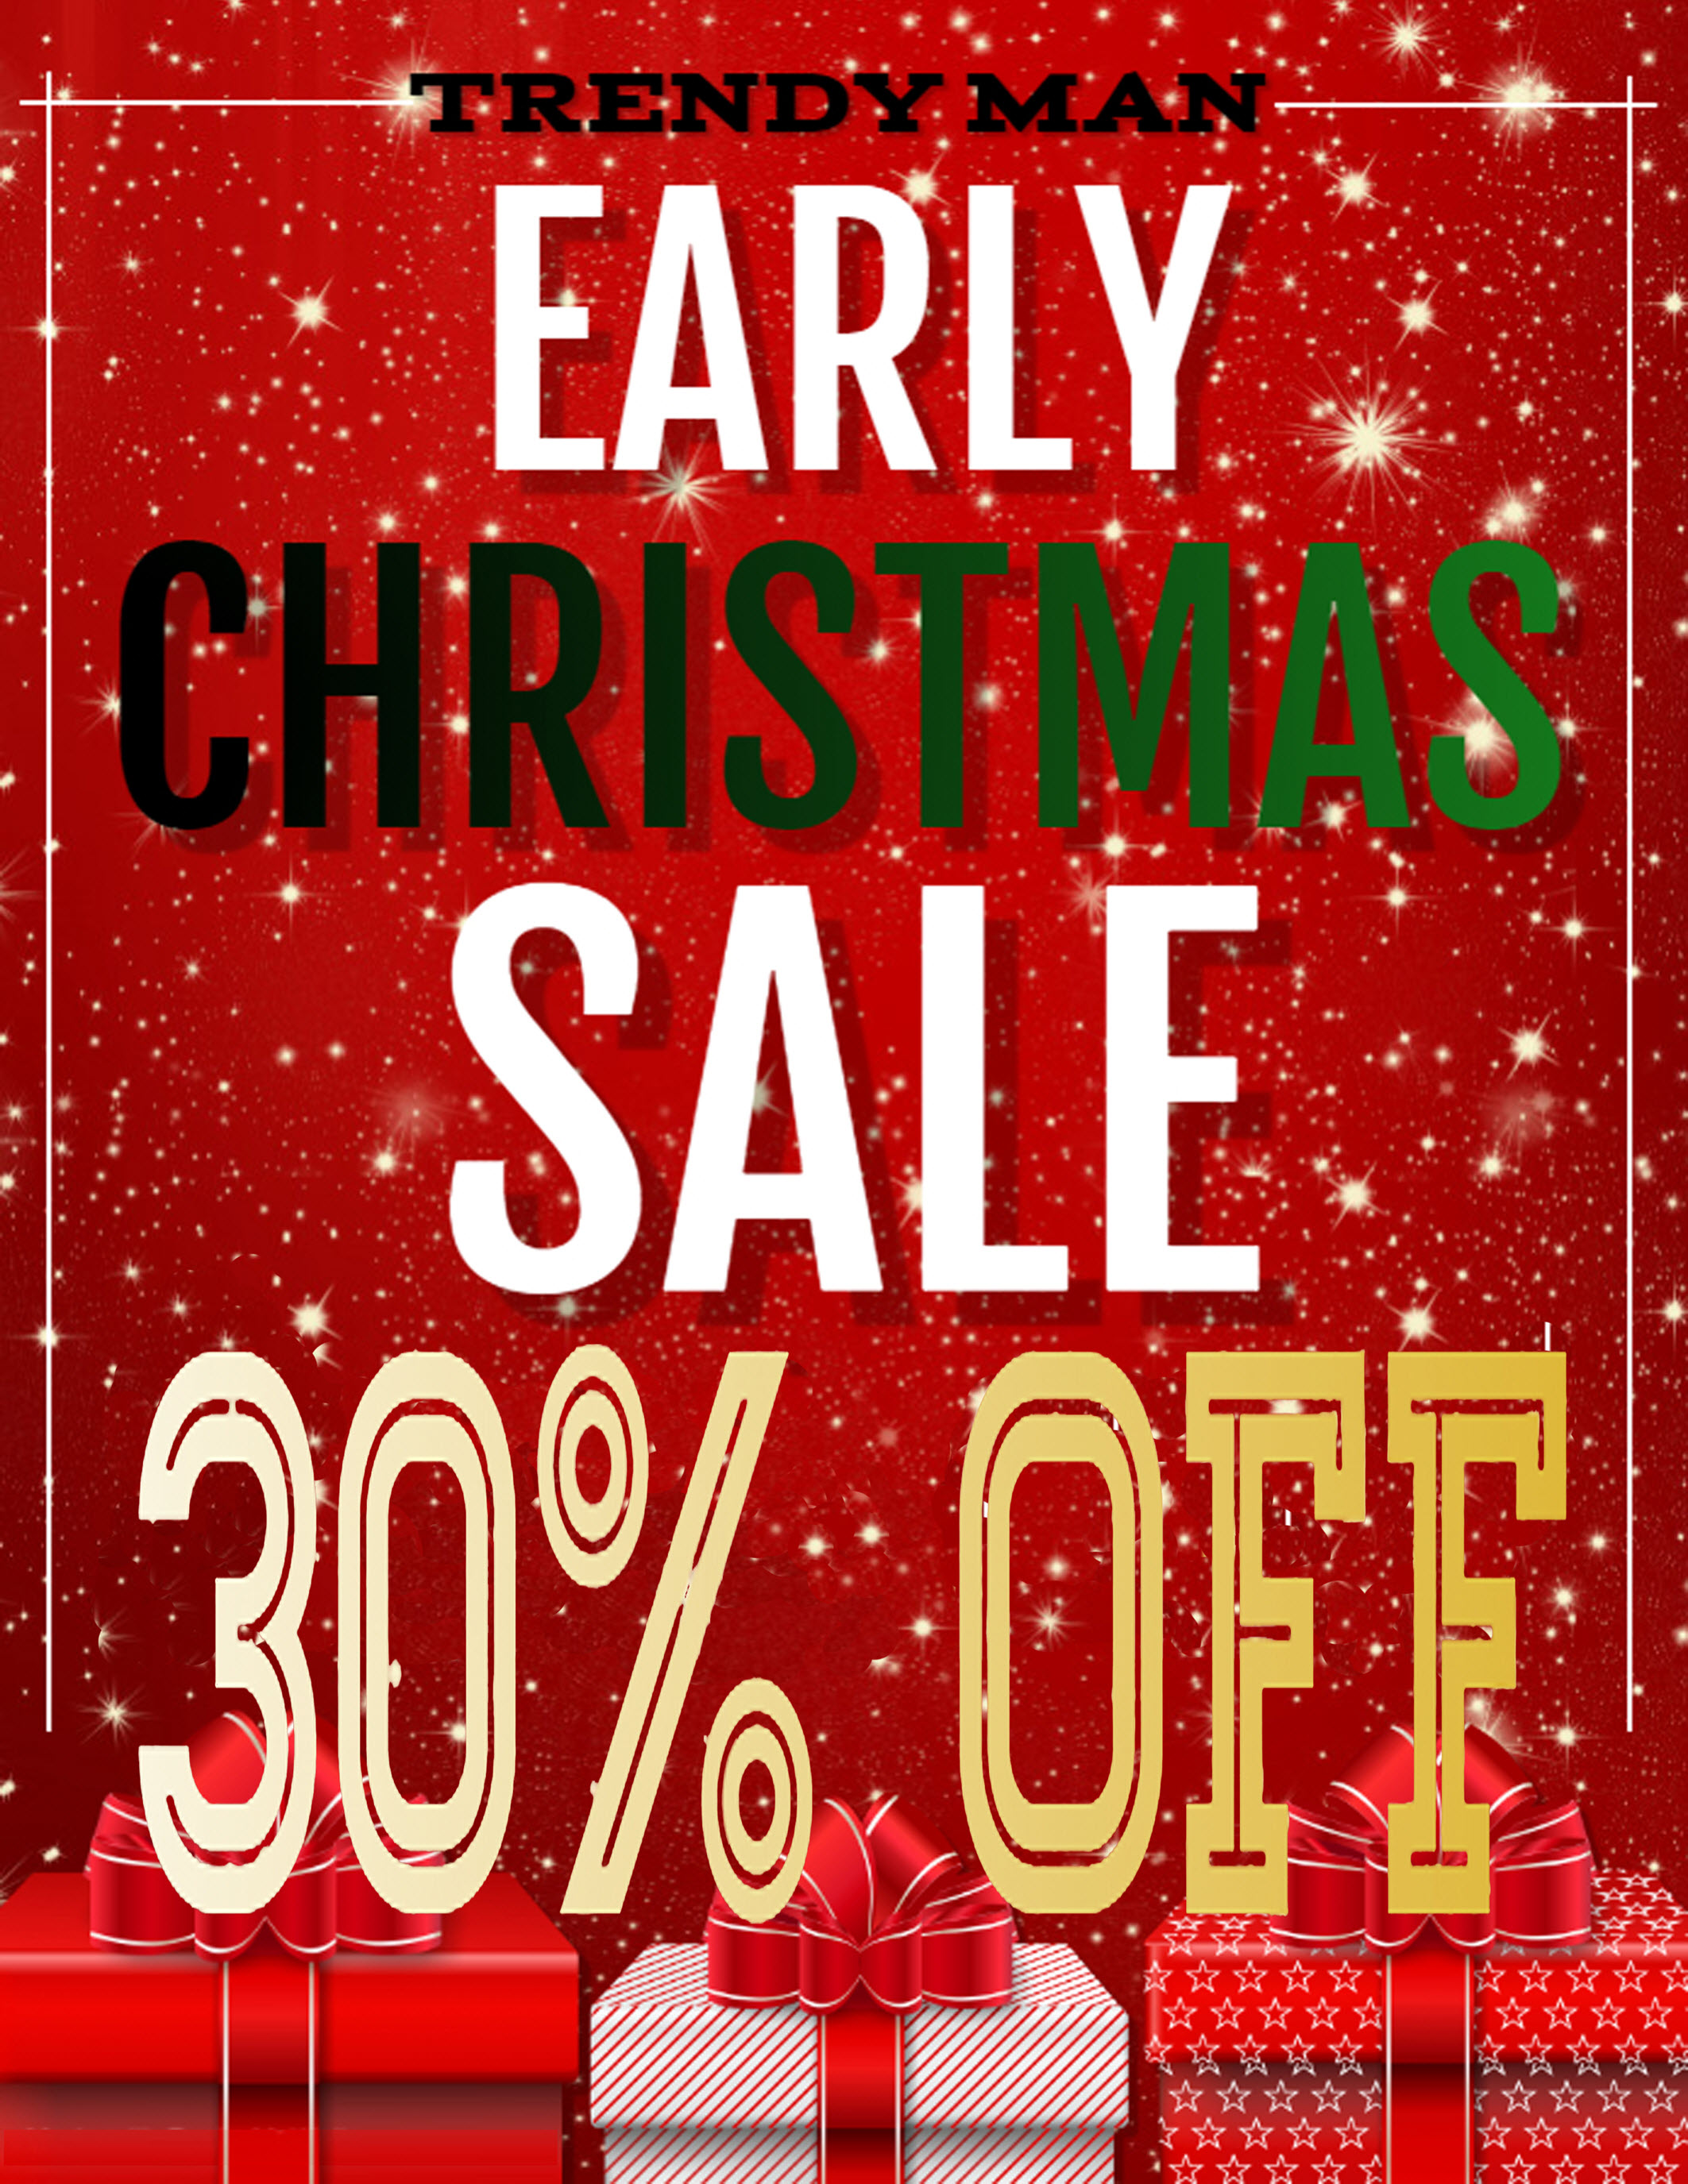 Early Christmas Sale from Trendy Man